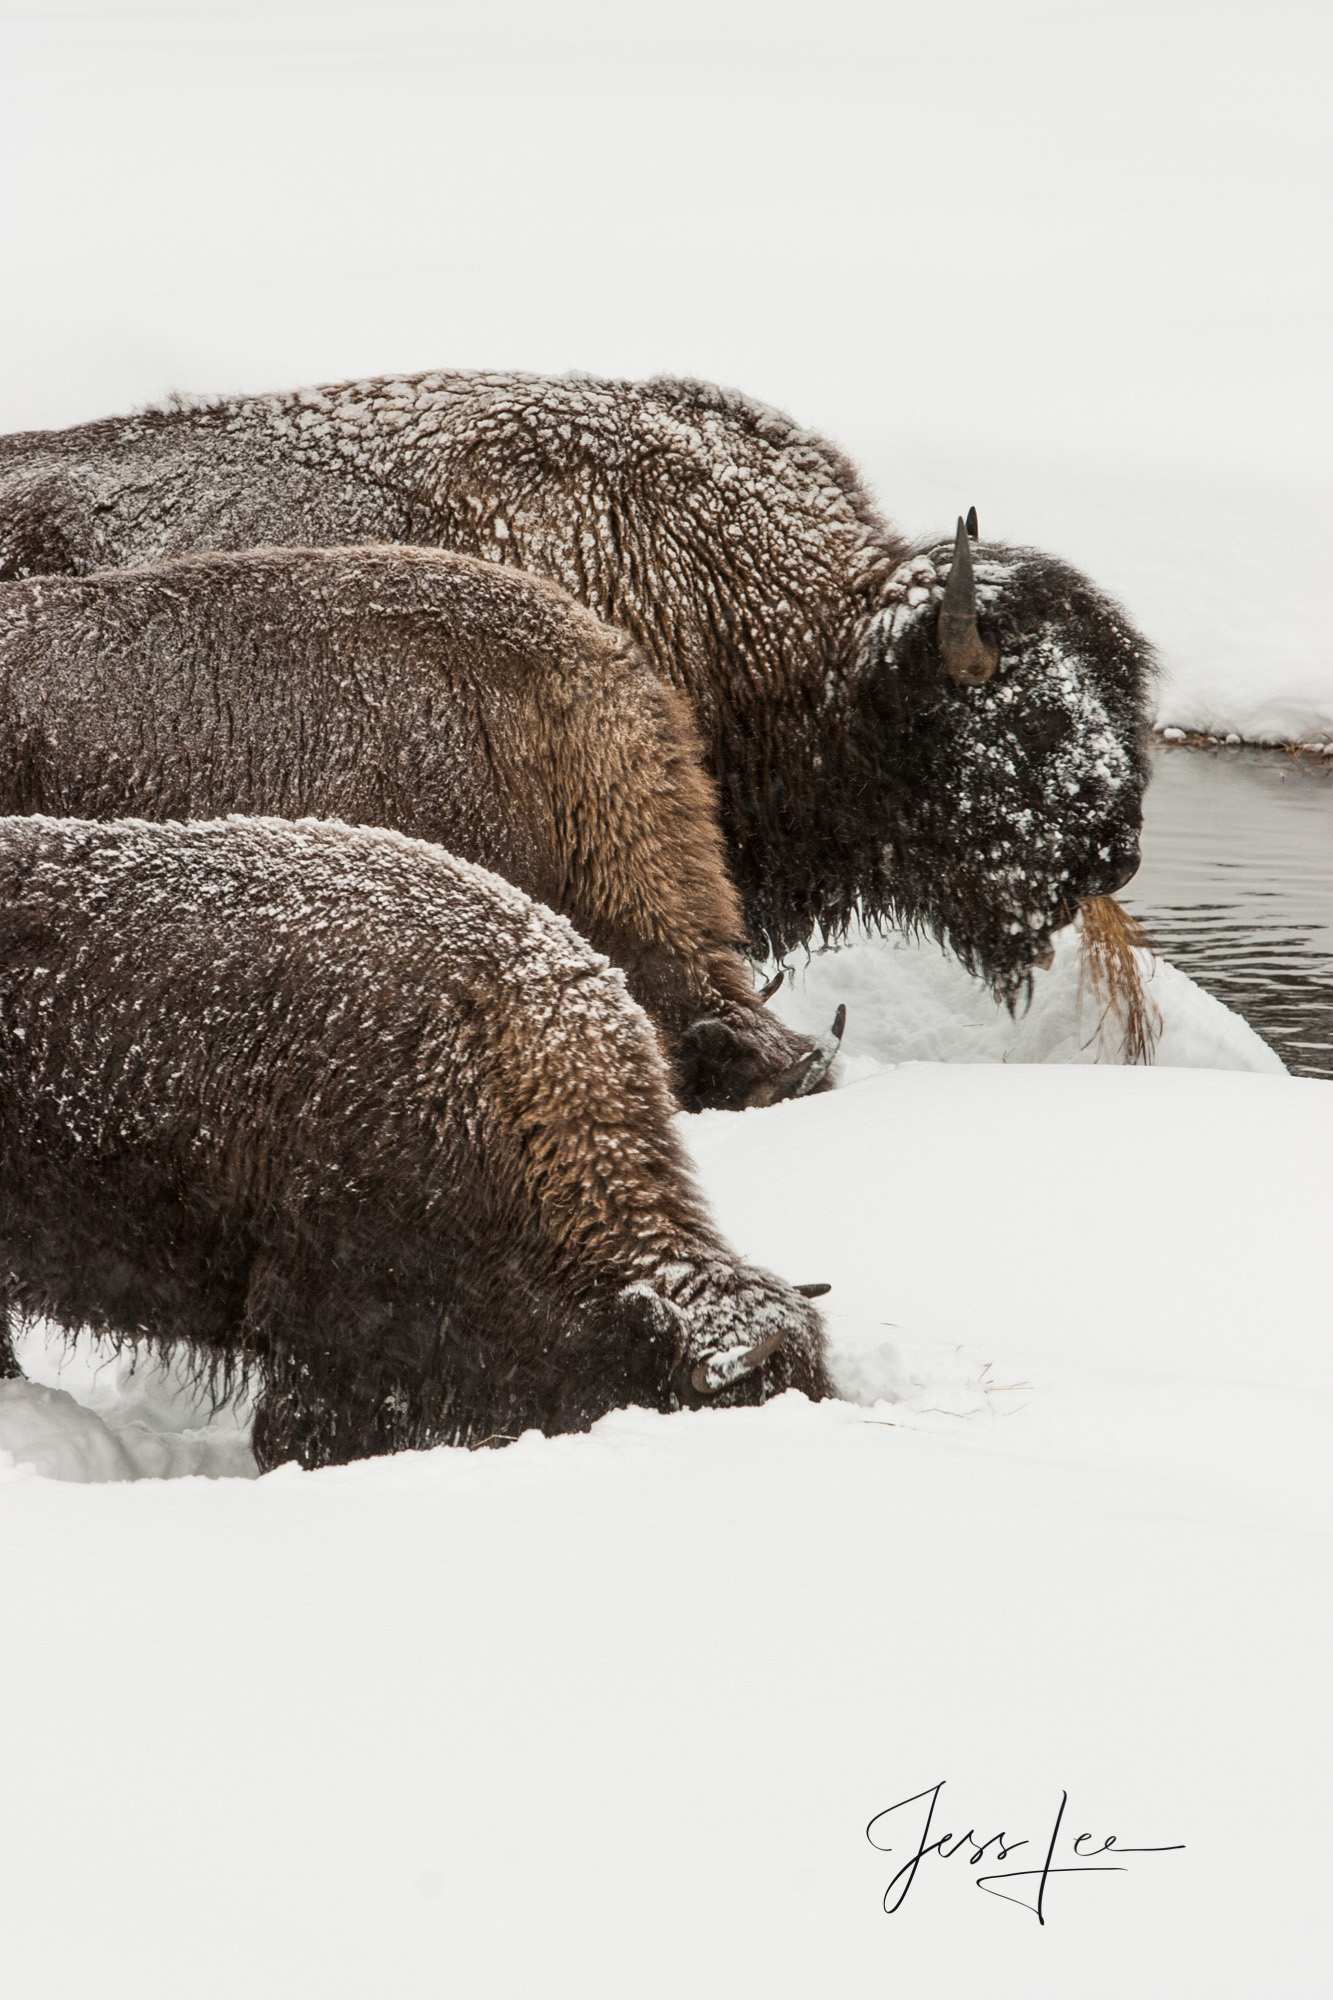 Bison Digging in snow, photo